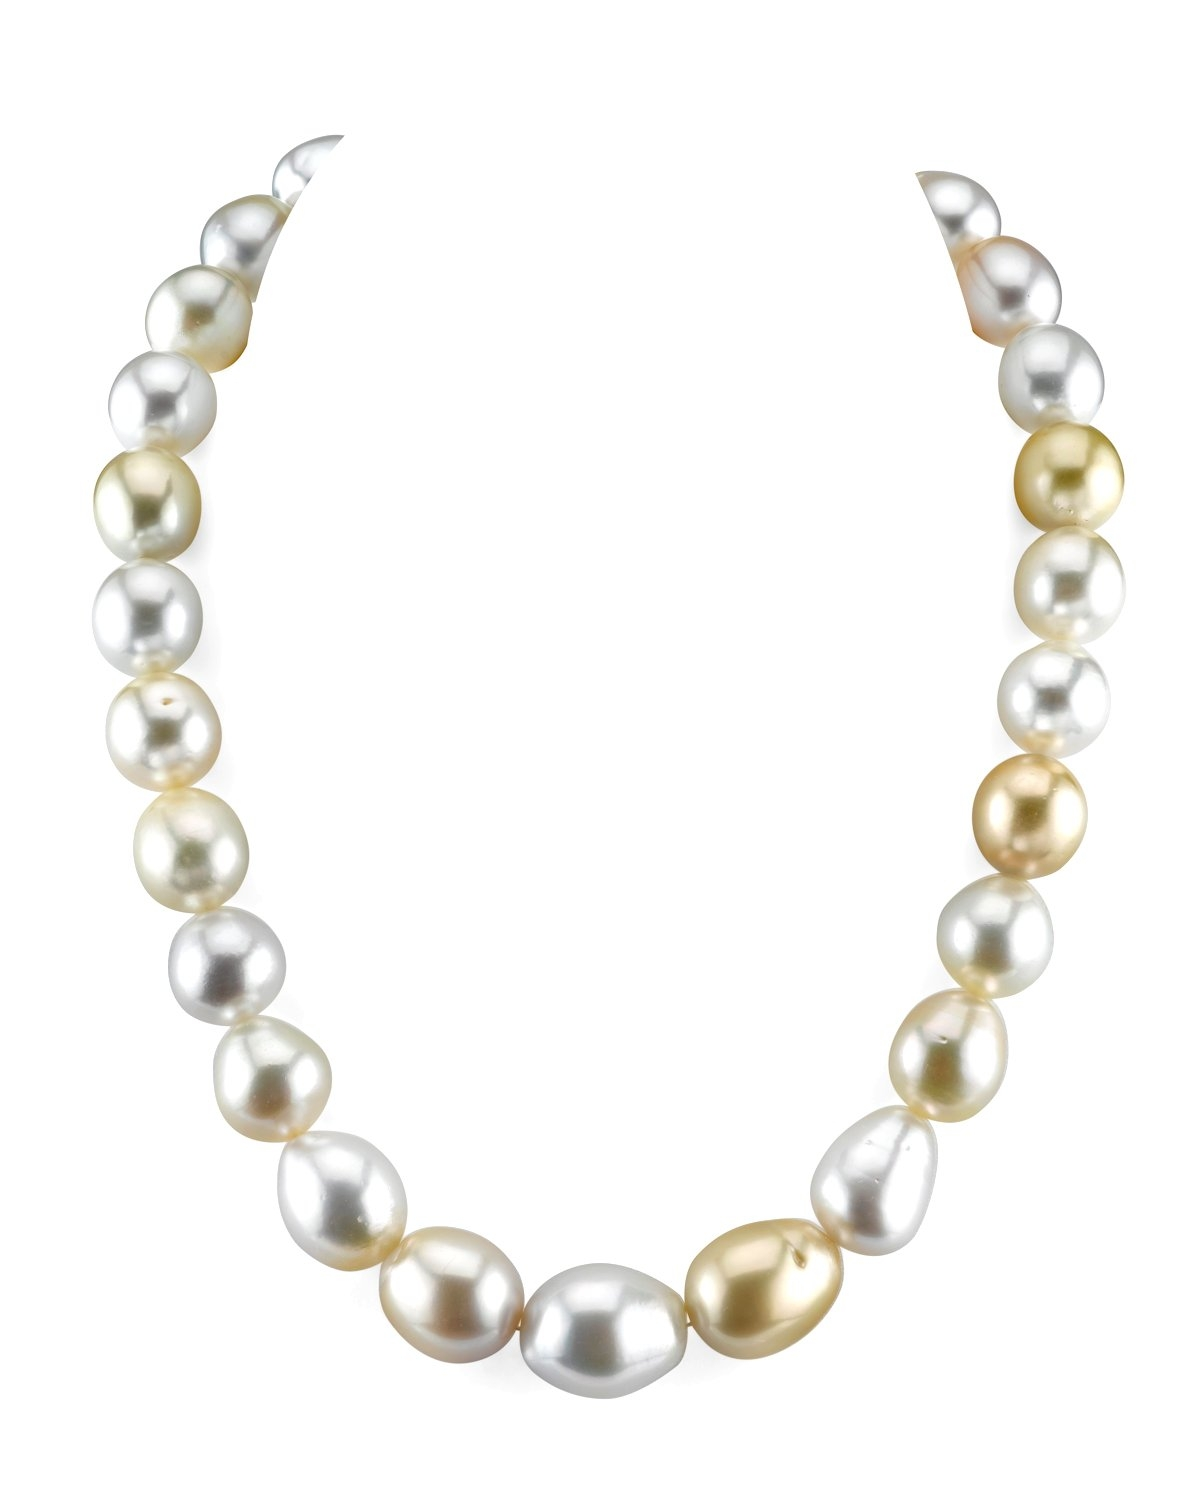 13-16mm South Sea Multicolor Baroque Pearl Necklace